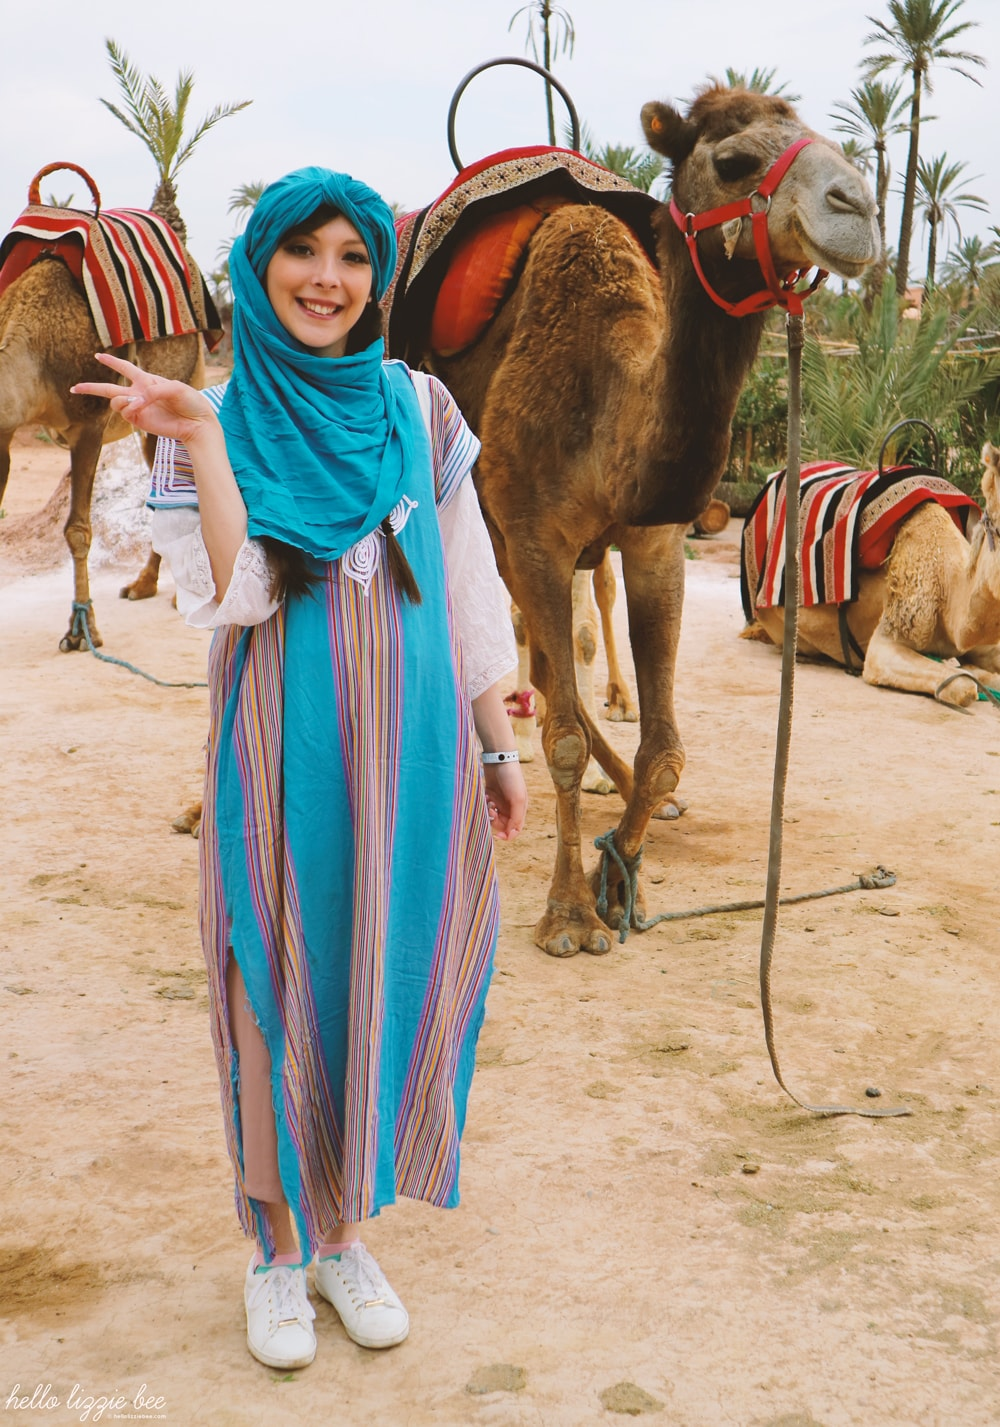 camel riding, camel safari, marrakesh, marrakech